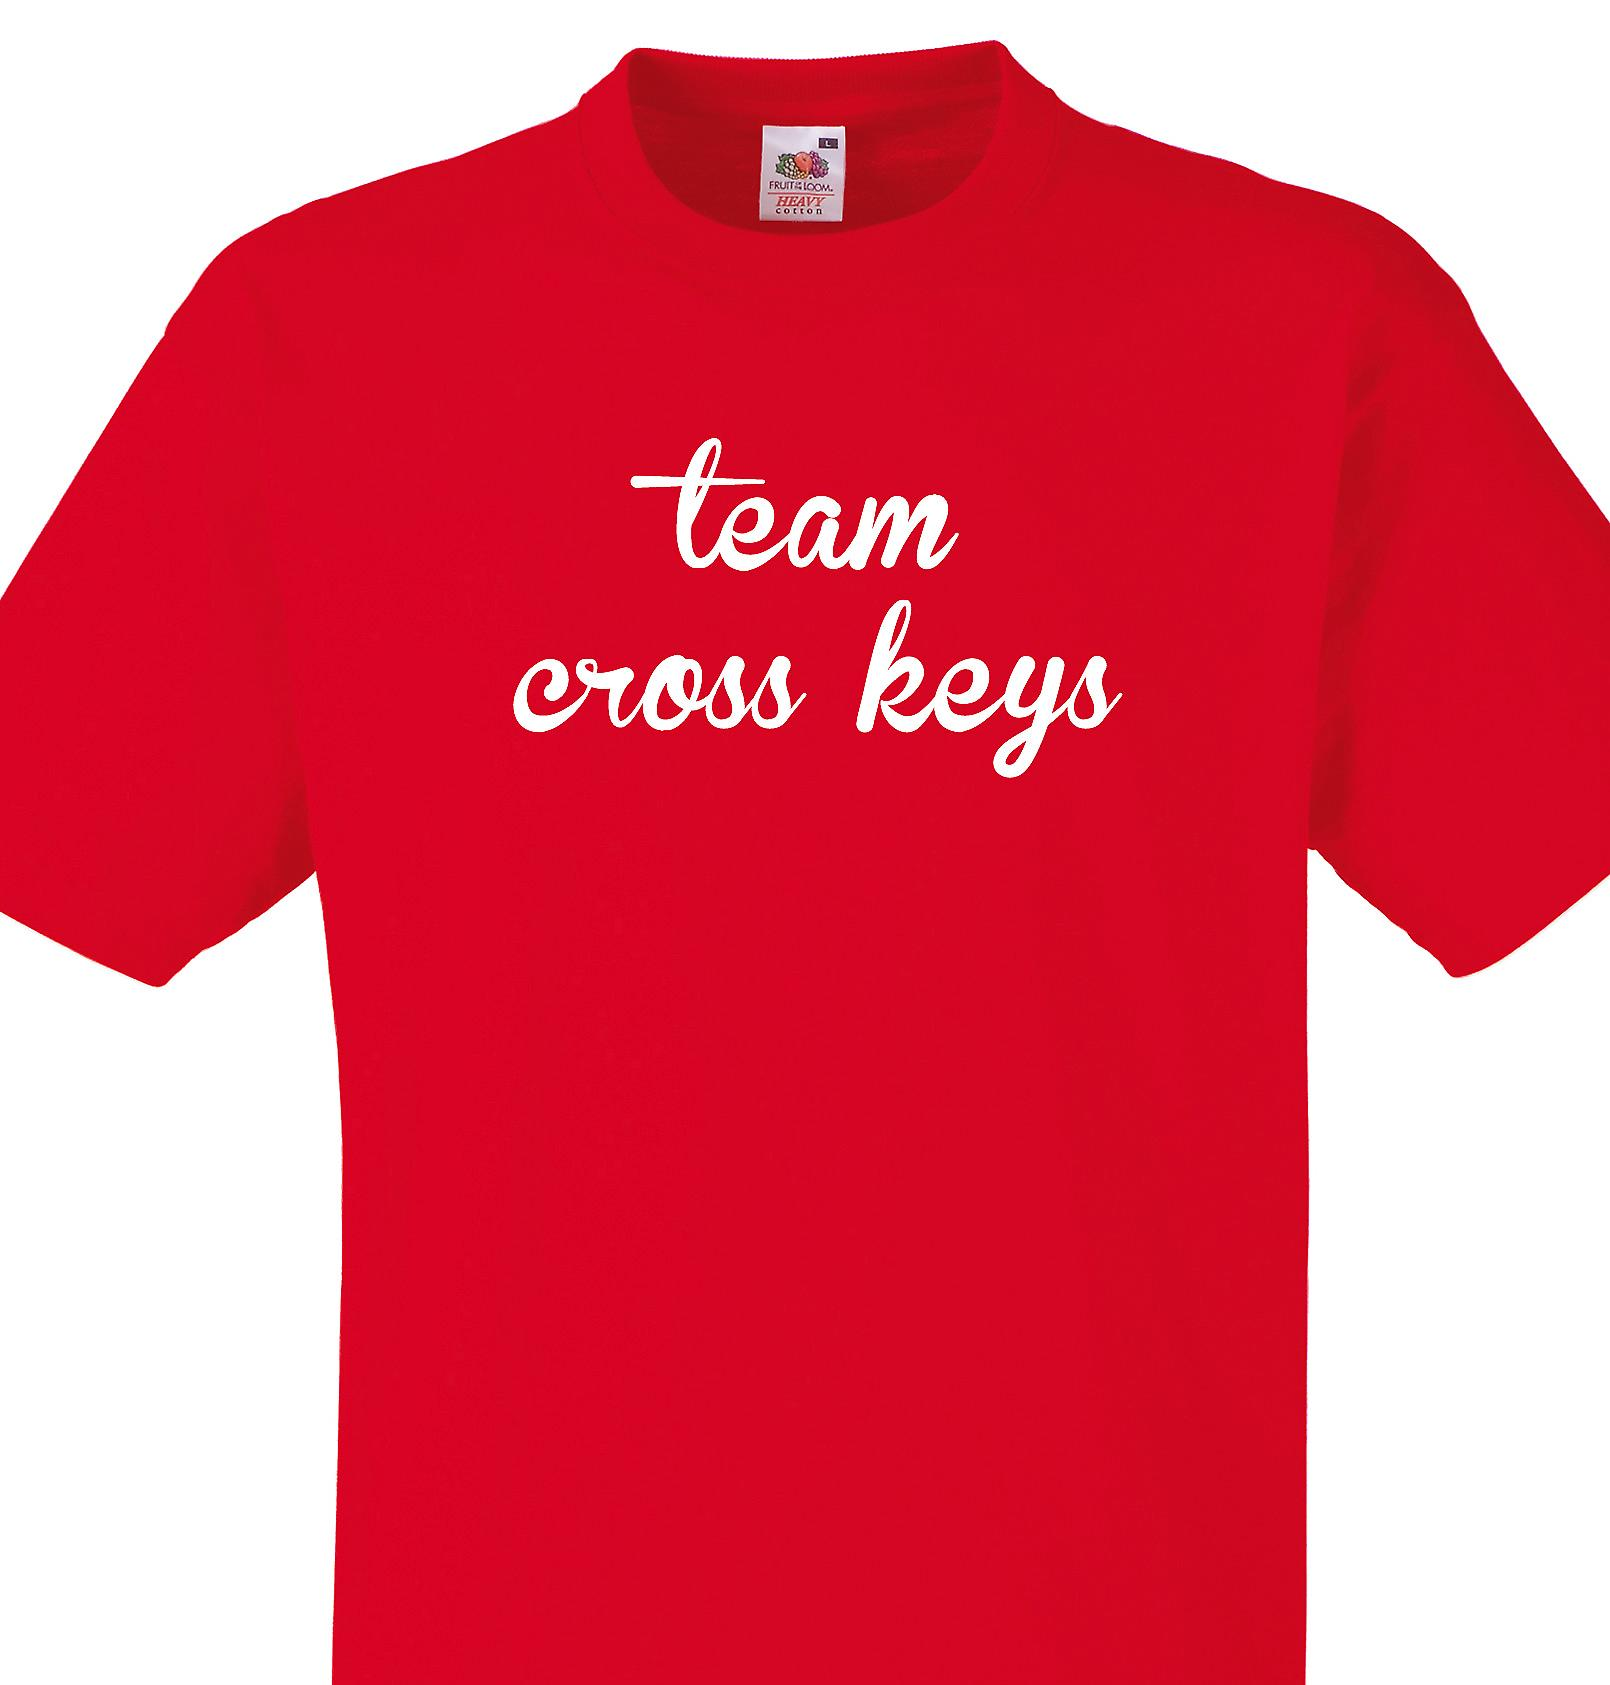 Team Cross keys Red T shirt